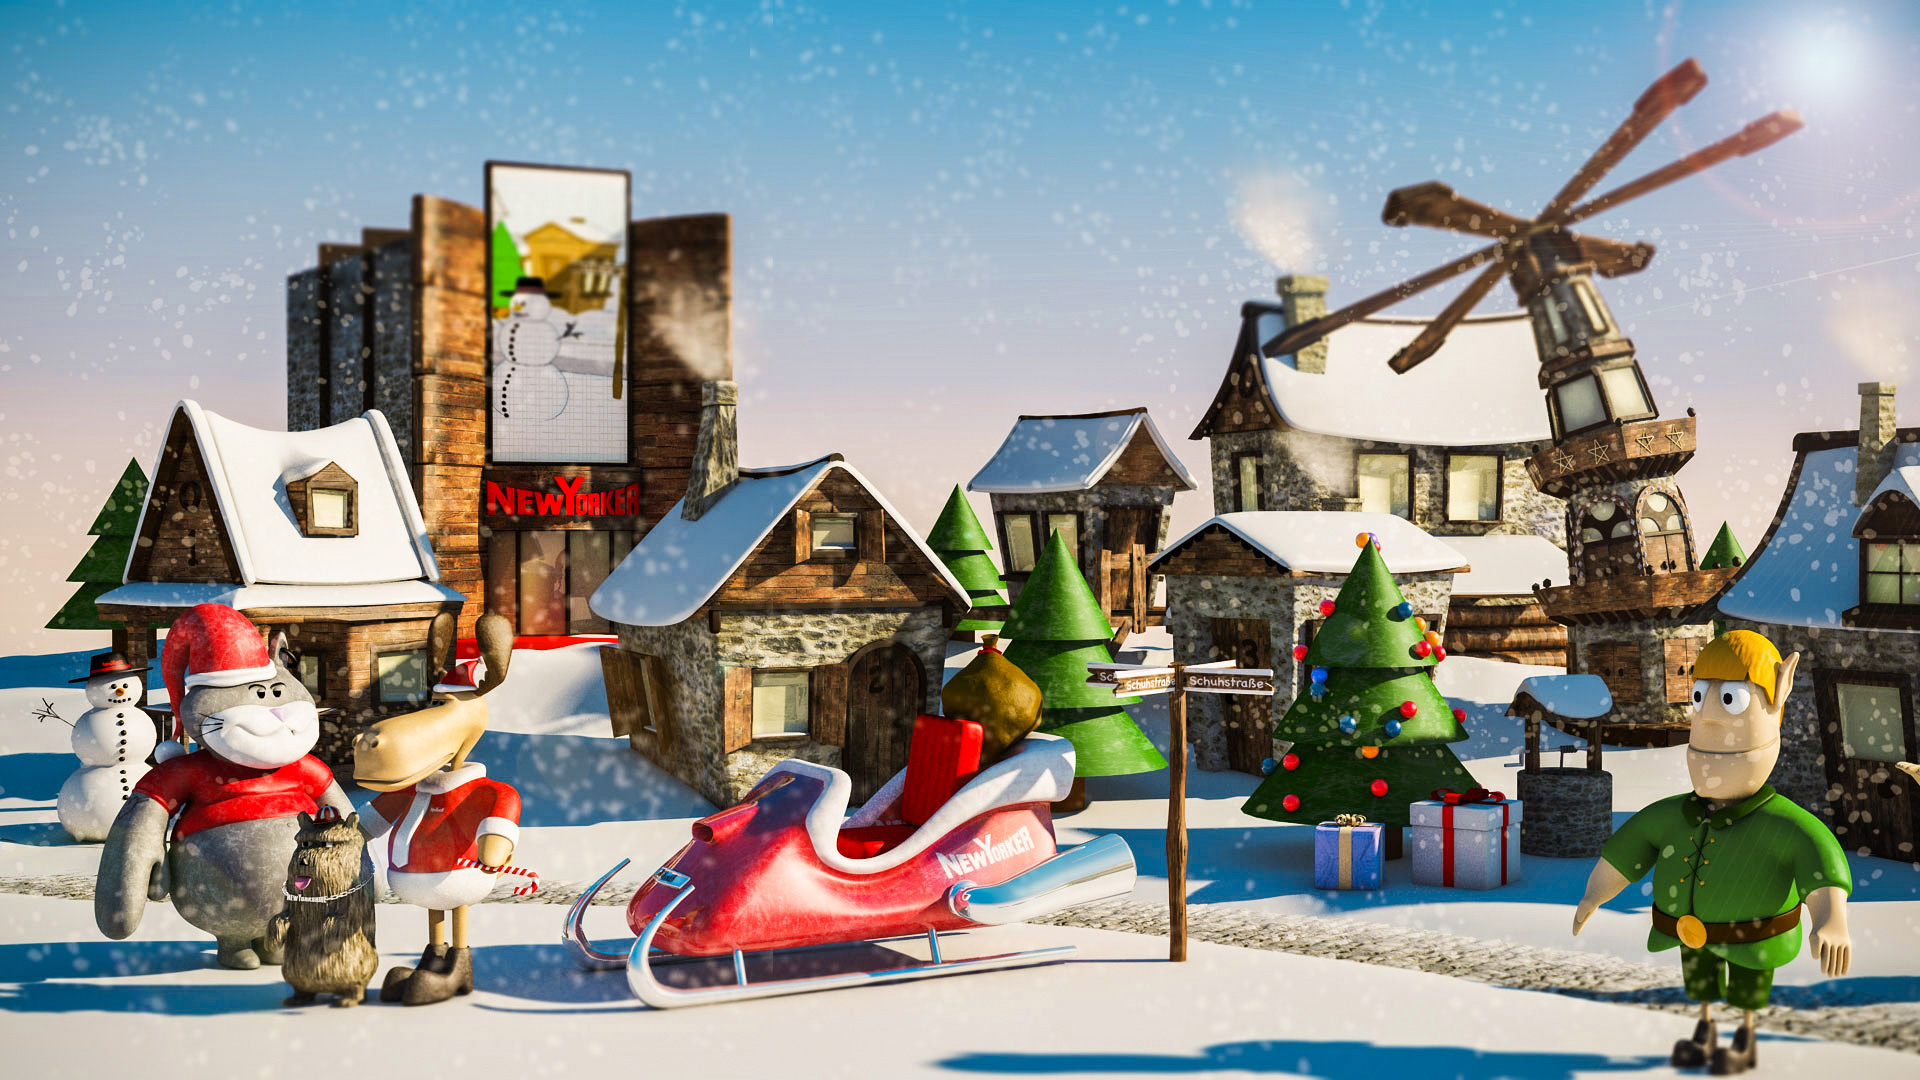 NY Christmas Calendar CGI-3D Website